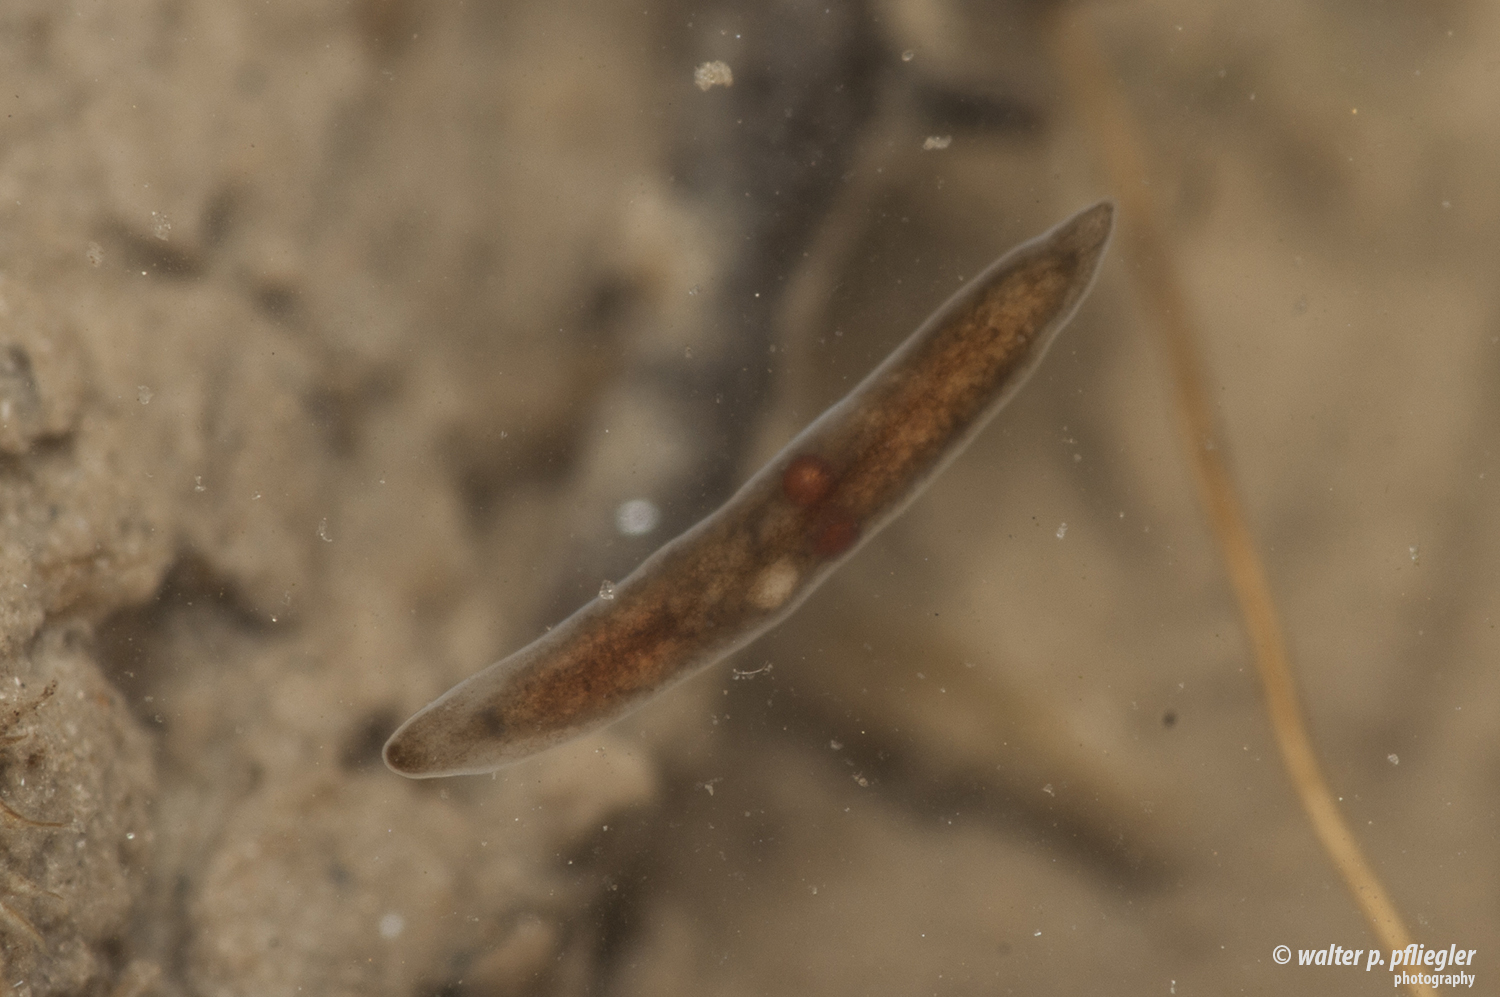 gerinctelen platyhelminthes